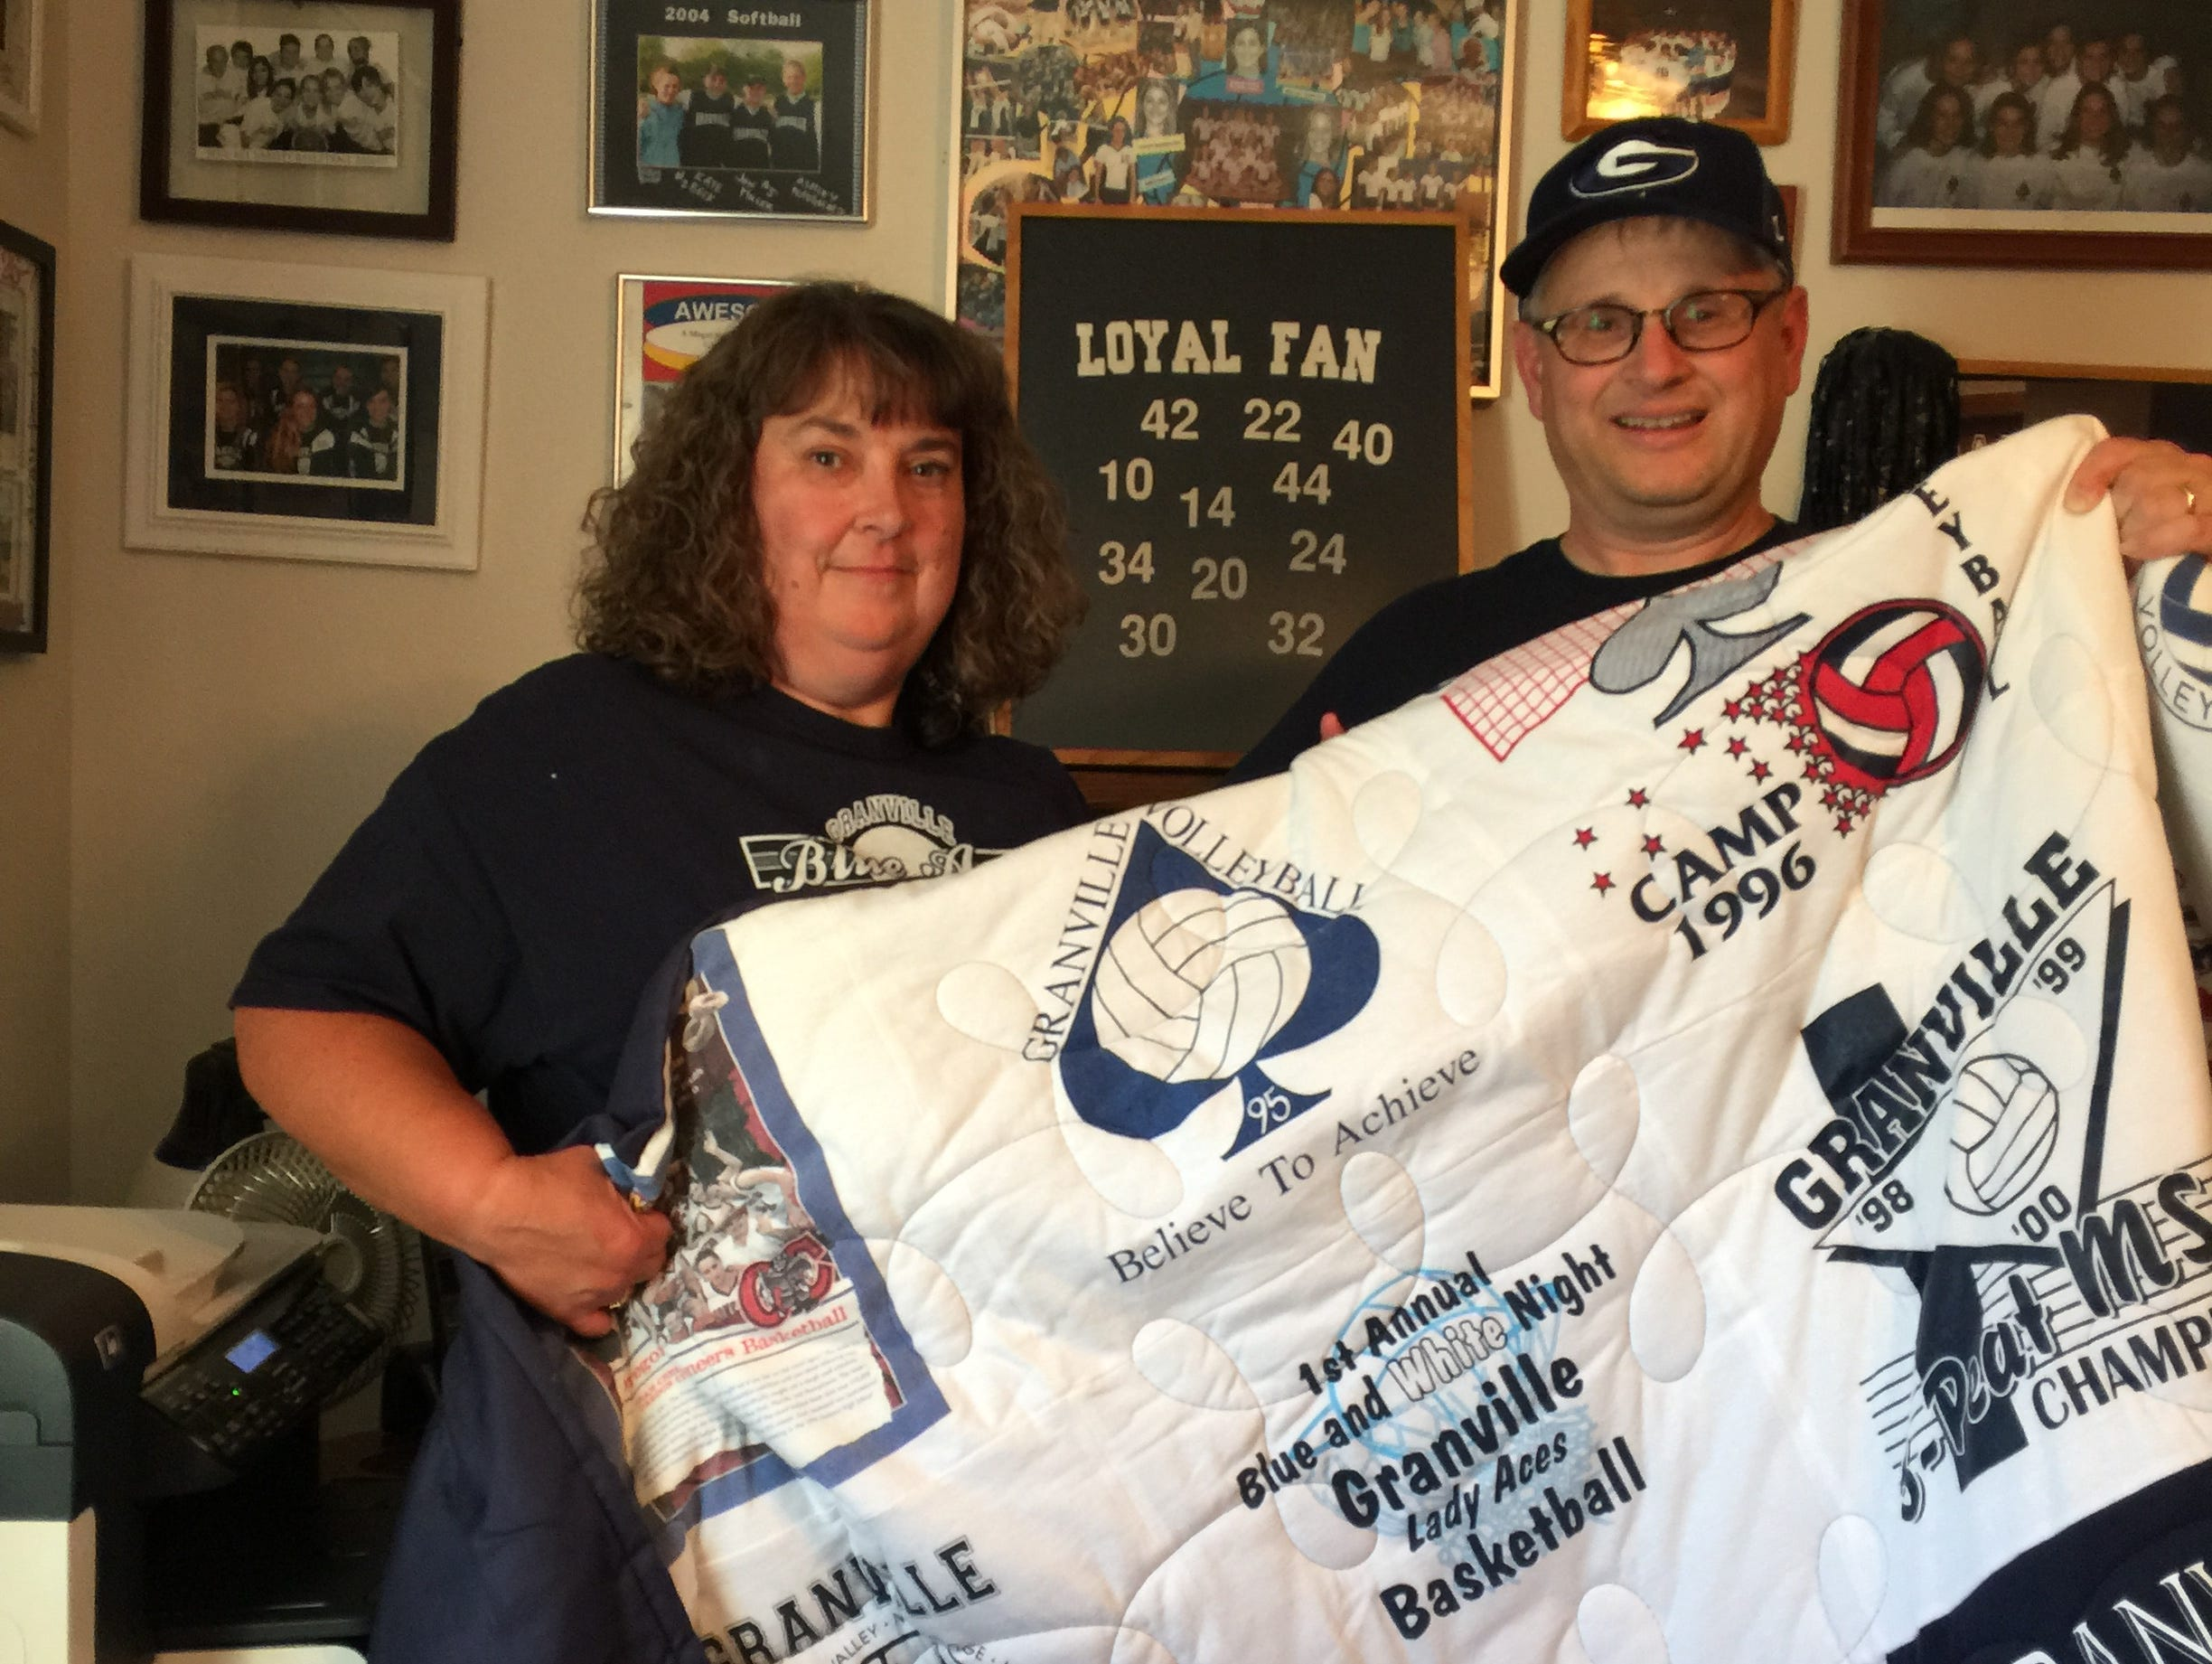 Sarah and Tim Davison display a quilt embroidered with various T-shirts from their 25 years of volunteering for Granville sports. Behind them, the walls in their home office are dominated by memorabilia given to them by the various teams.